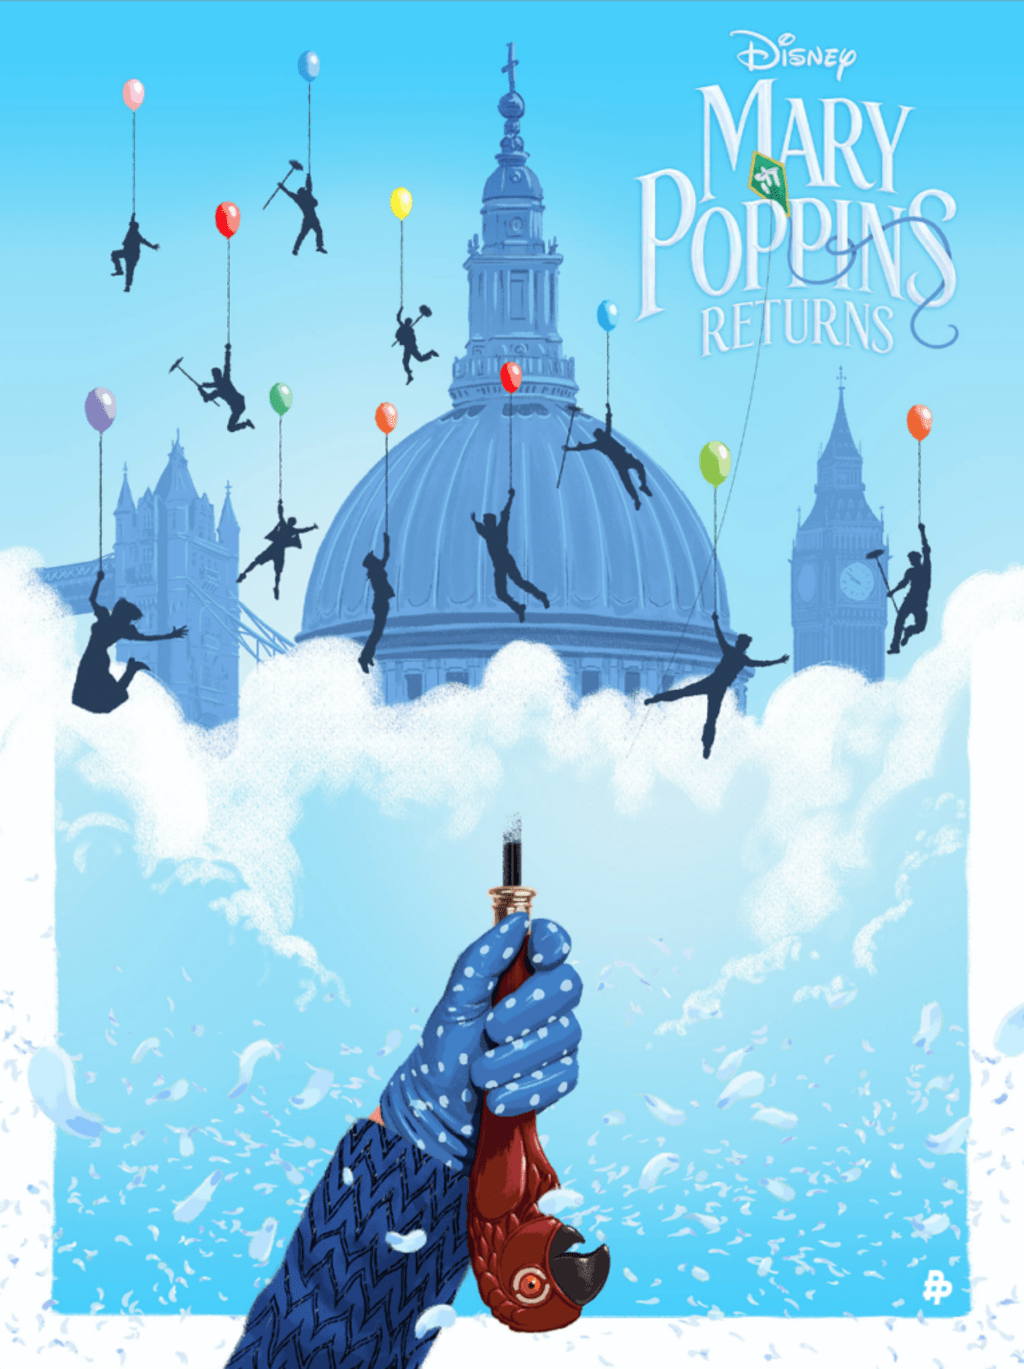 Iconography in 'Mary Poppins Returns'